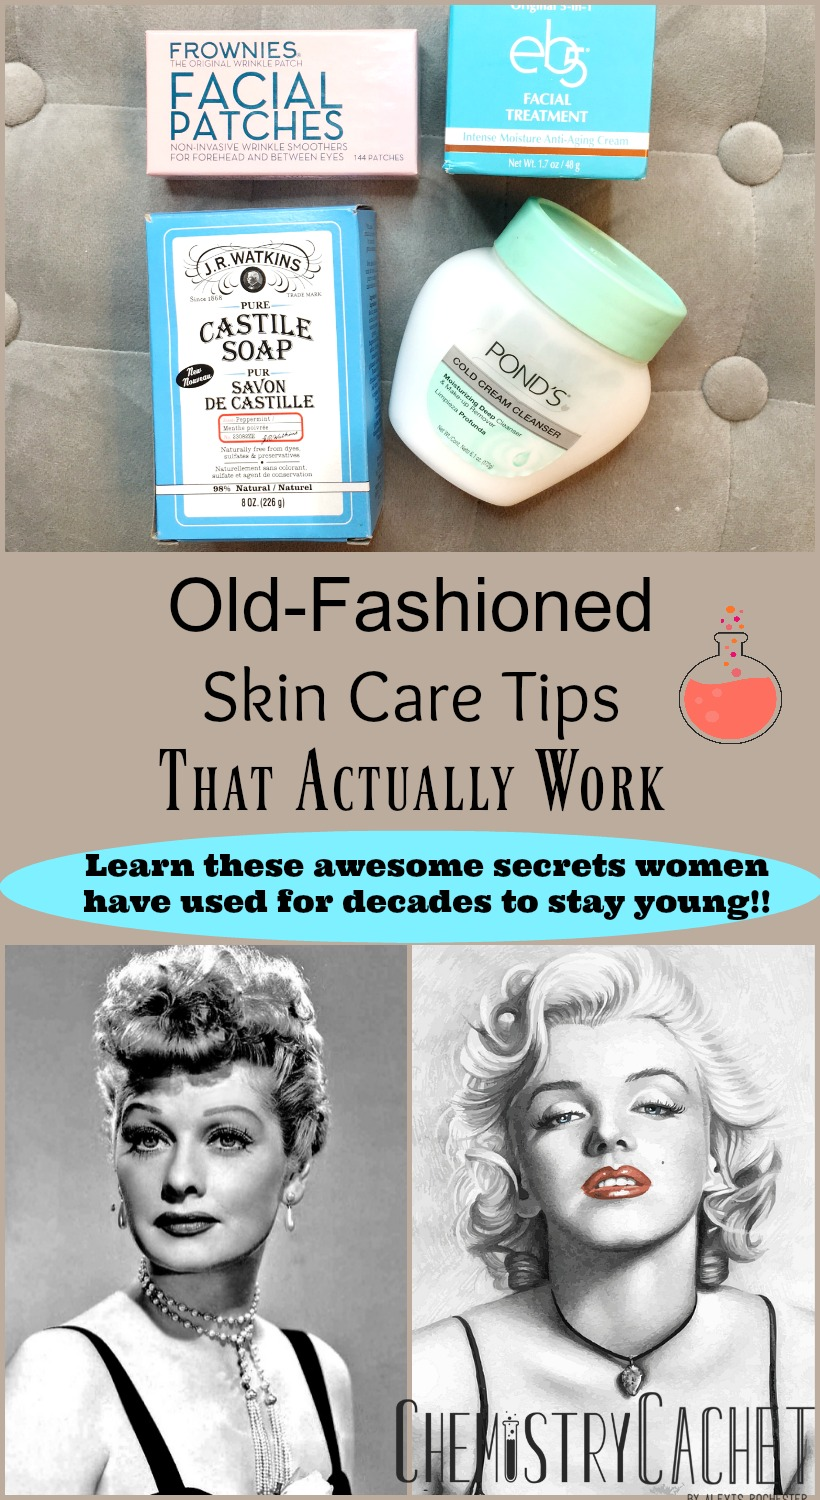 Old-Fashioned Skin Care Tips That Actually Work